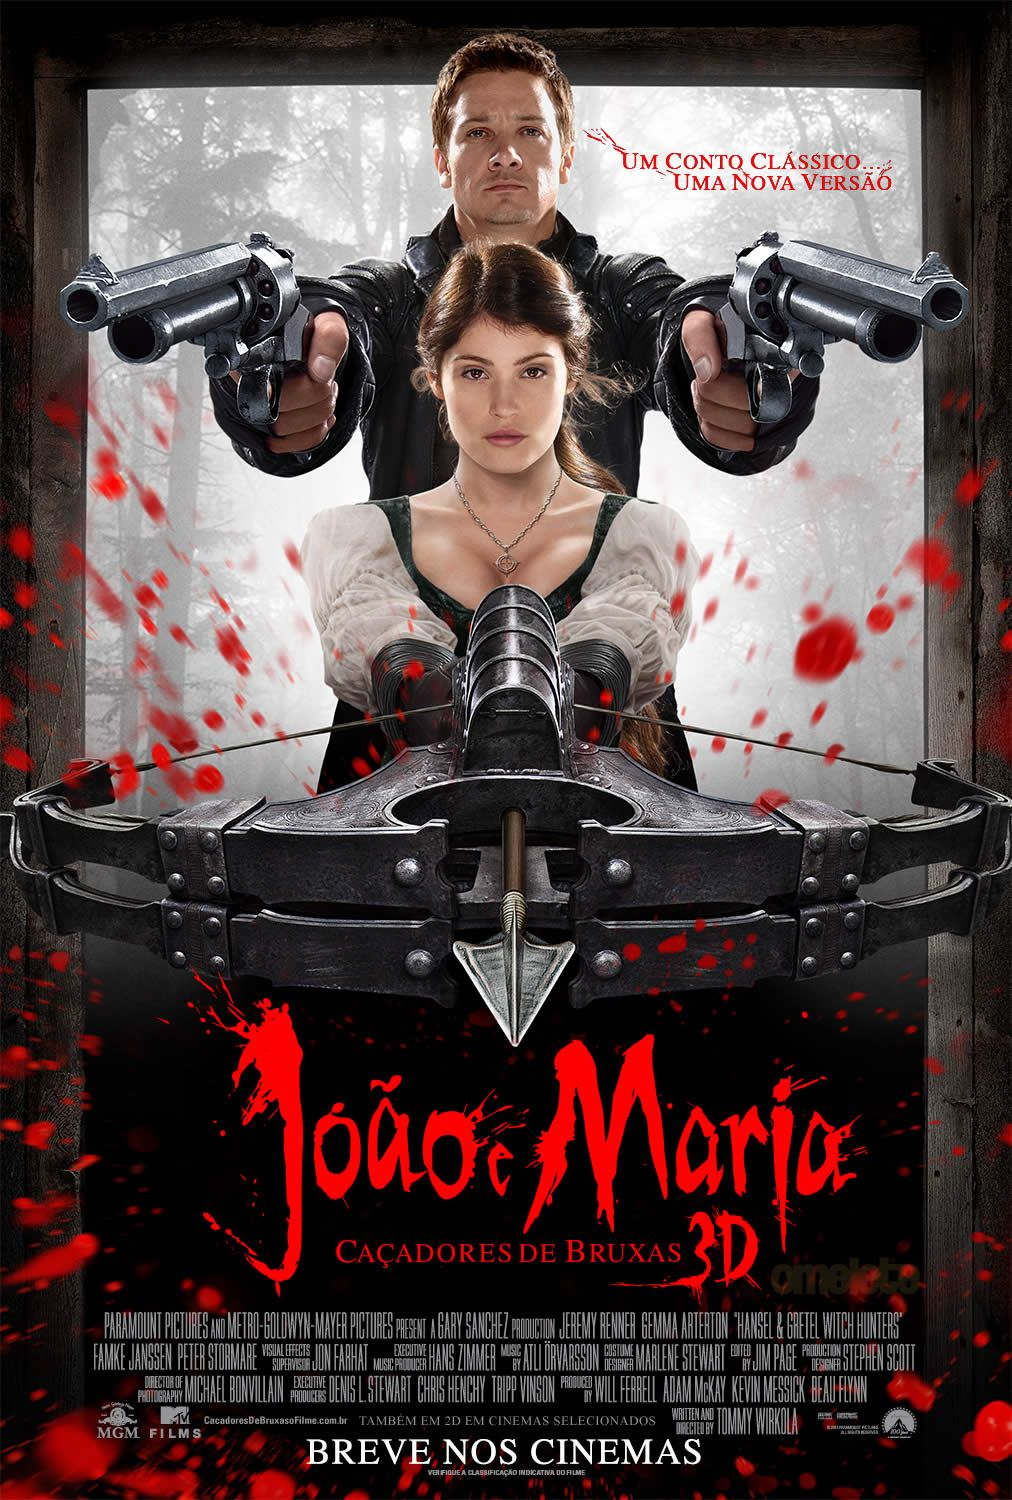 Hansel Gretel The Witch Hunters Showing Jan 25 2013 Baixar Filmes Filmes Cacadores